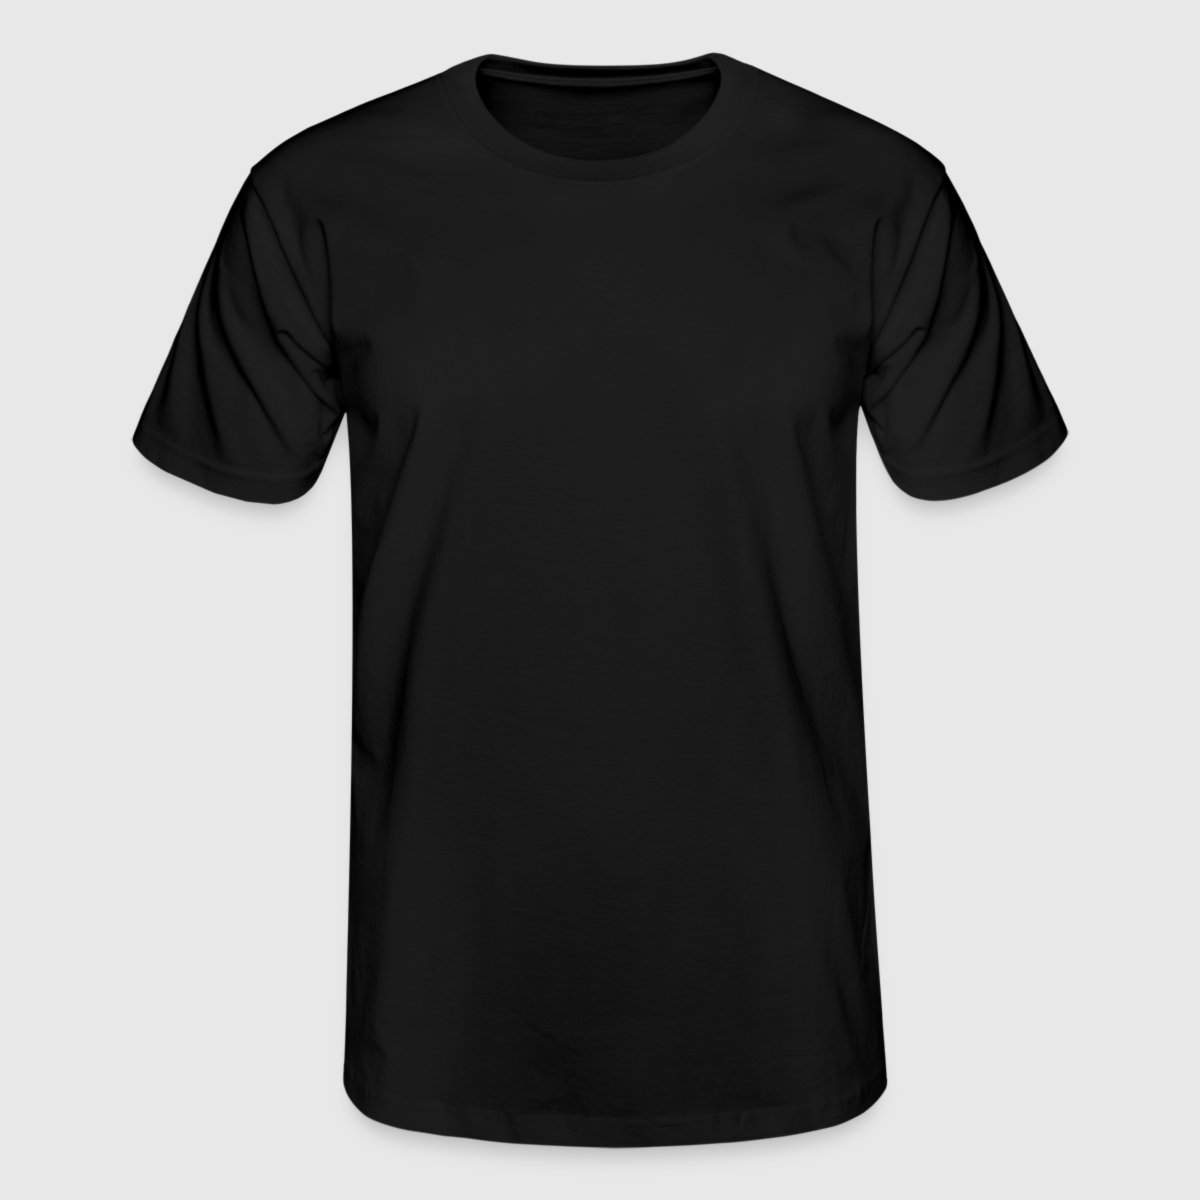 Men's T-shirt by Fruit of the Loom - Front